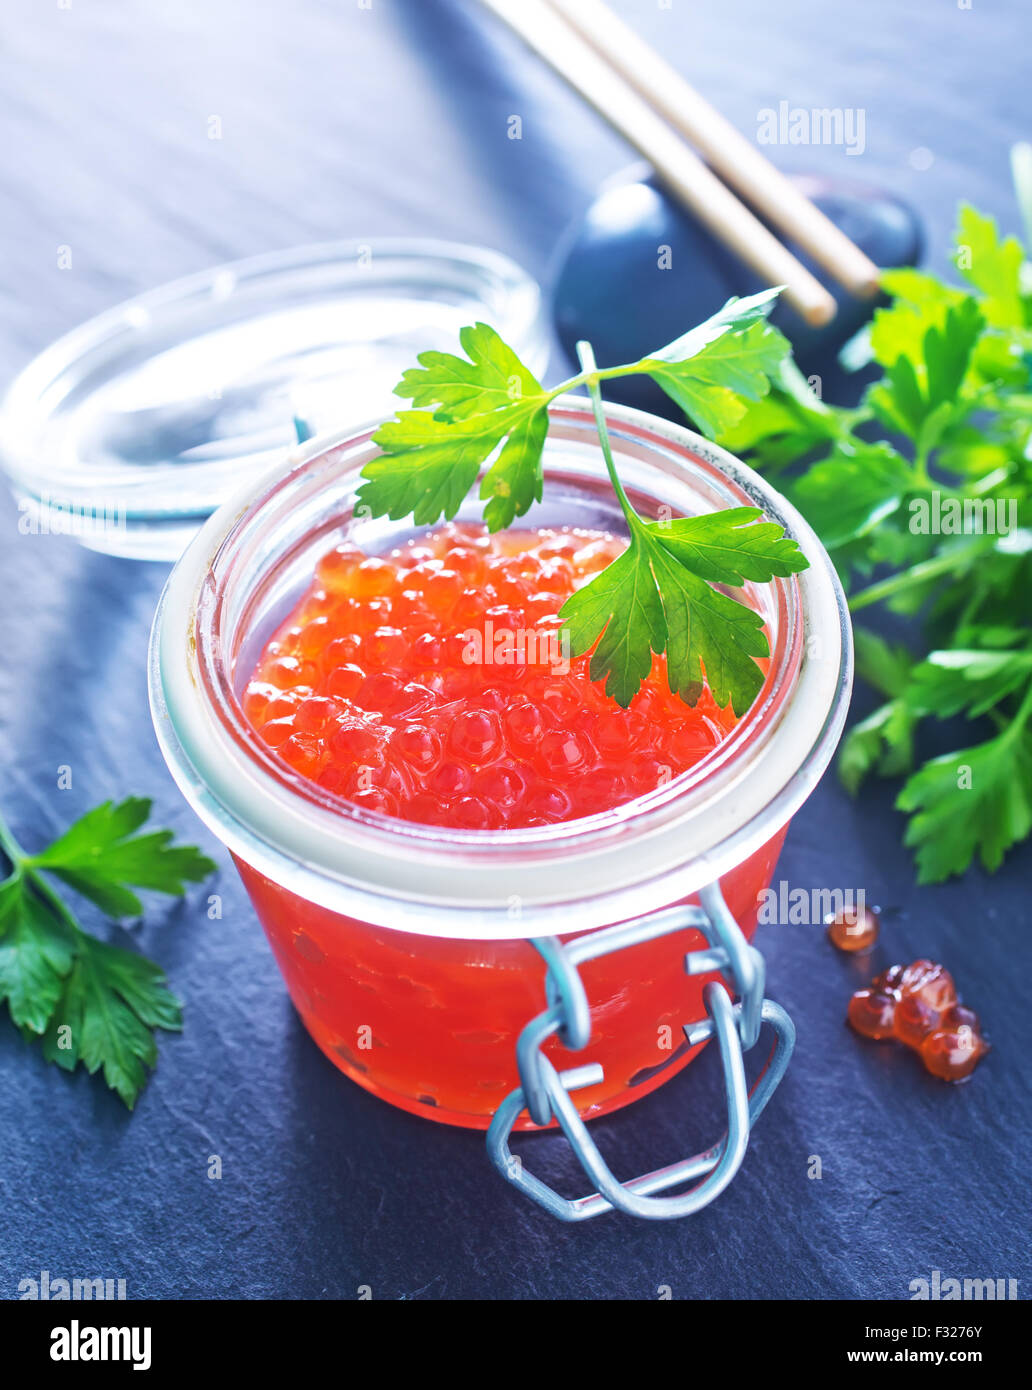 red salmon caviar in glass bank and on a table - Stock Image